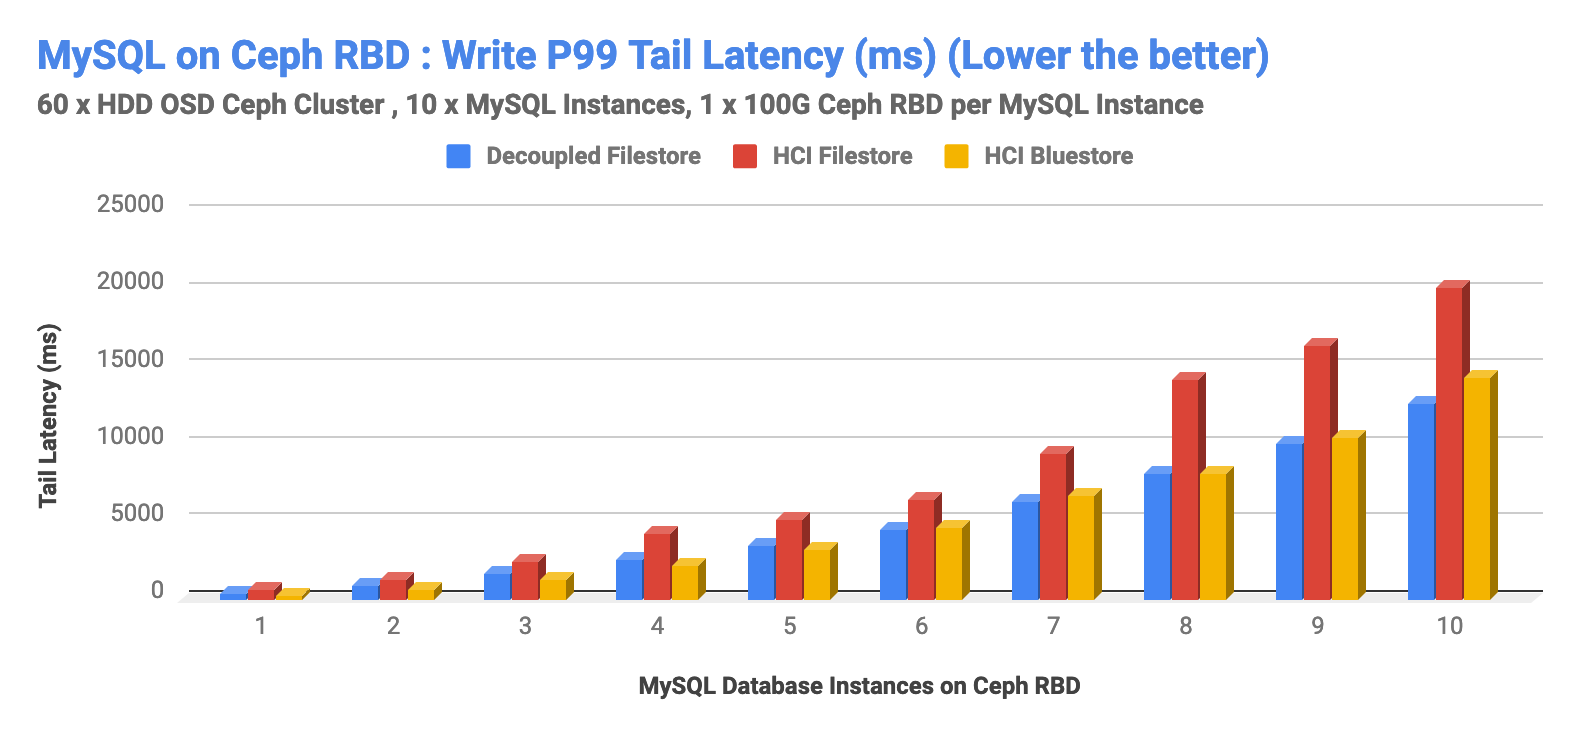 MySQL on Ceph RBD: Write P99 Tail Latency (ms) (Lower the Better)